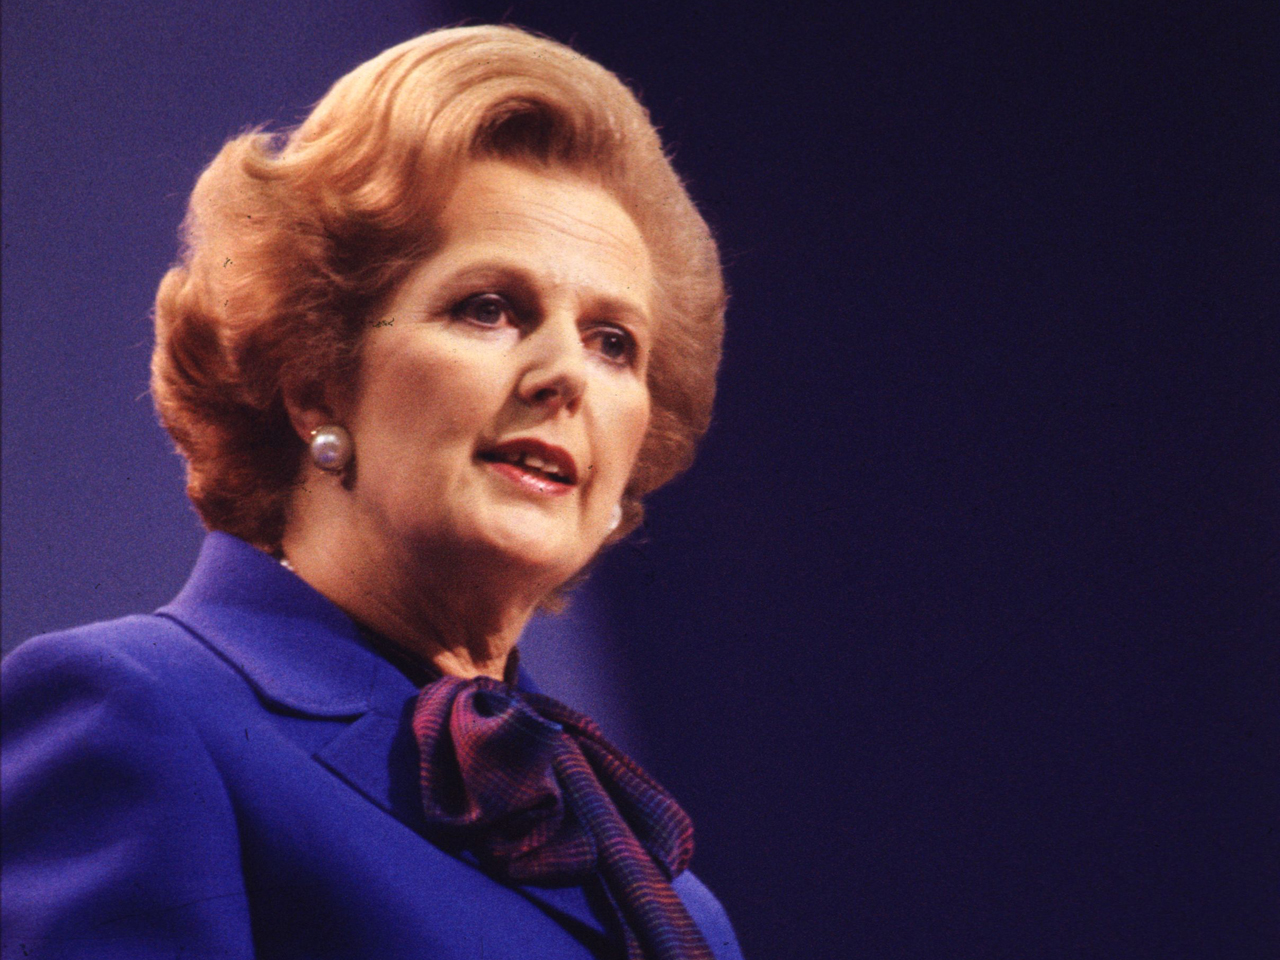 Margaret Thatcher's steadfast style: Suits, pearls and ...